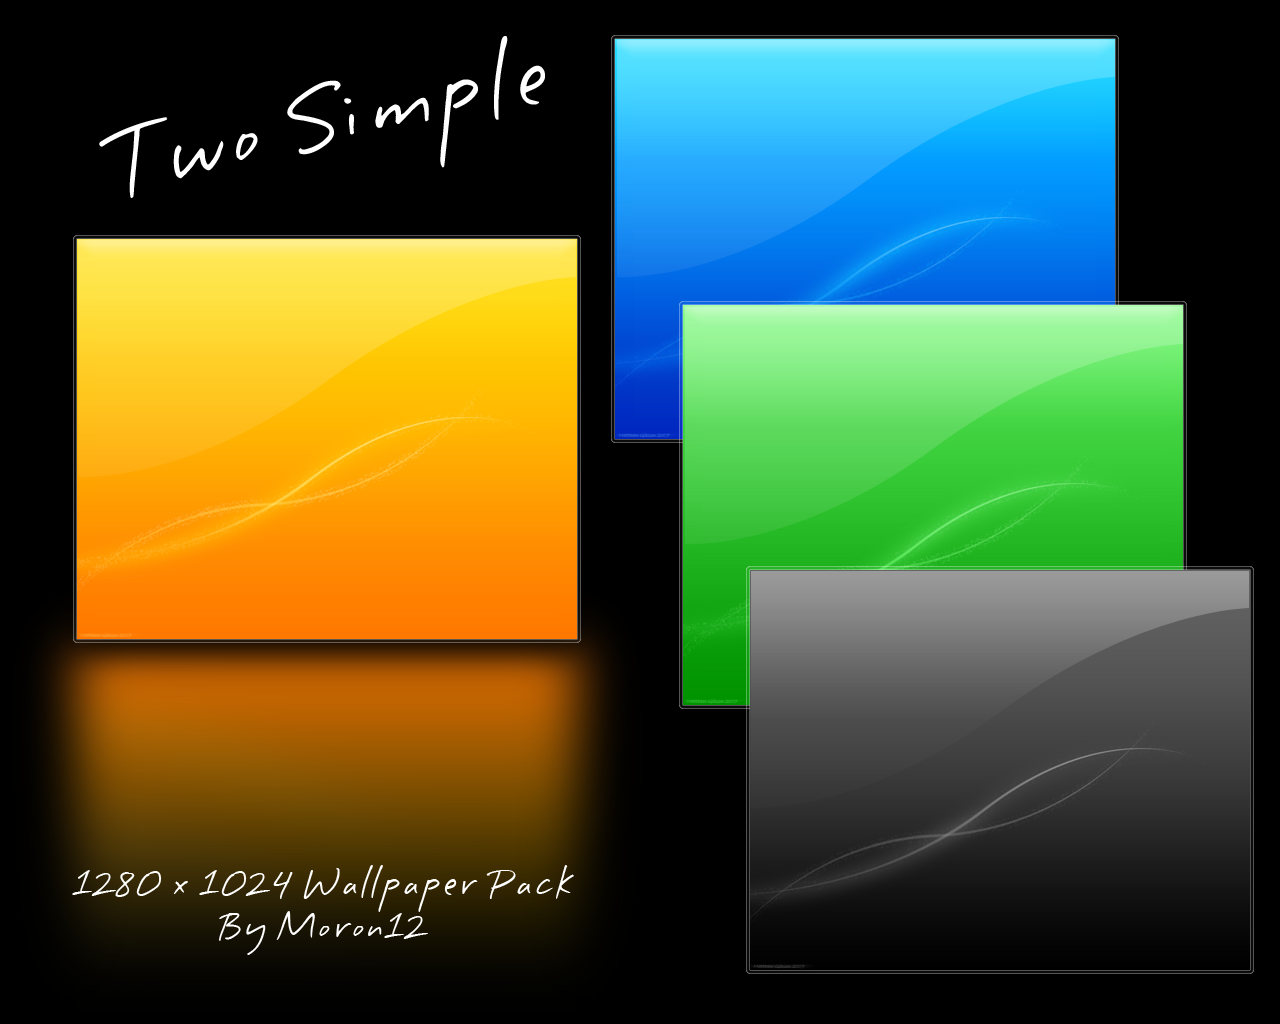 Two Simple Wallpaper Pack by moron12